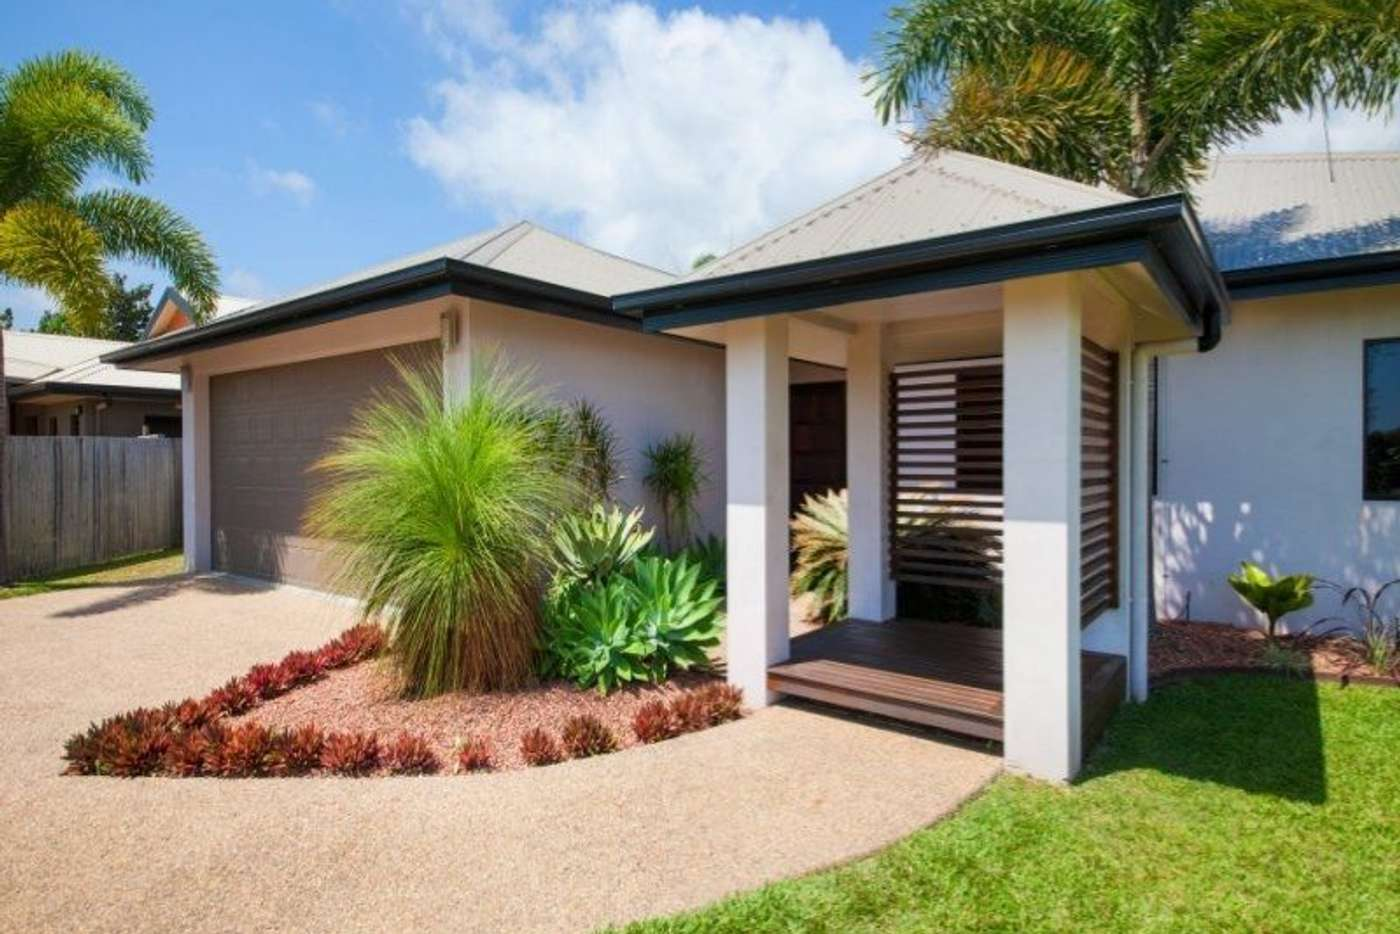 Main view of Homely house listing, 17 Myalup Close, Kewarra Beach QLD 4879